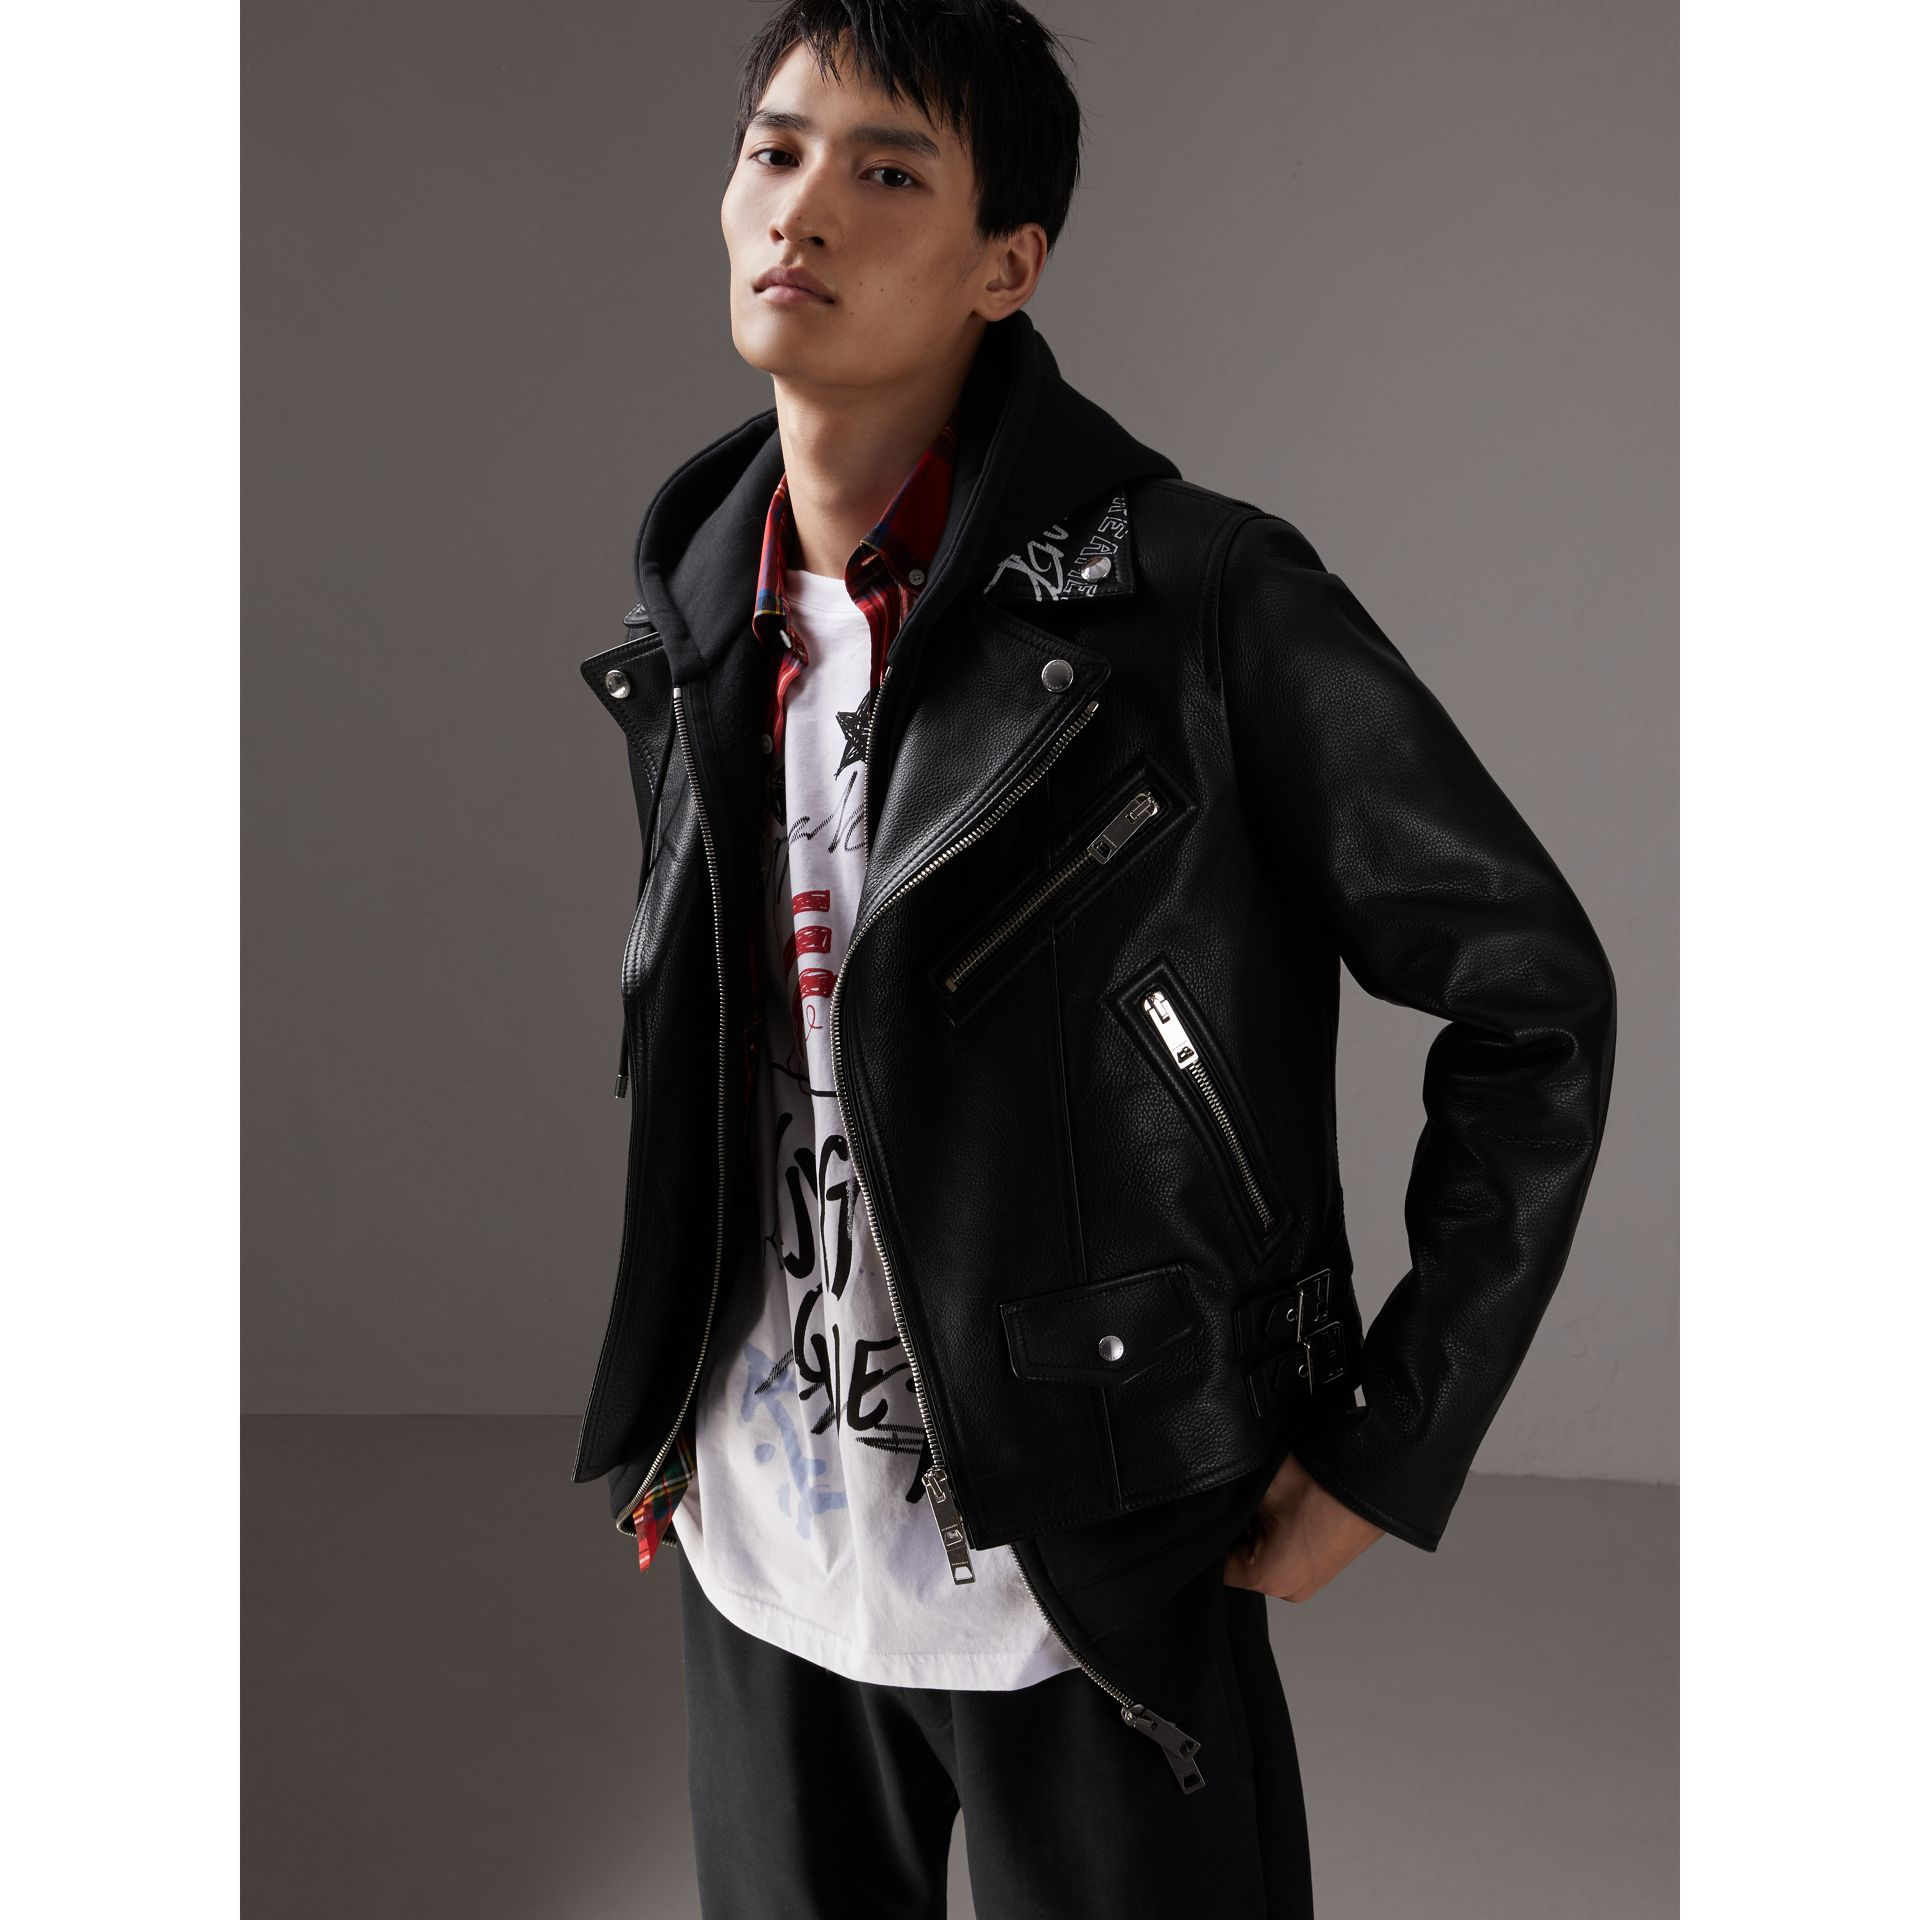 Burberry x Kris Wu Leather Biker Jacket in Black - Men | Burberry - gallery image 6